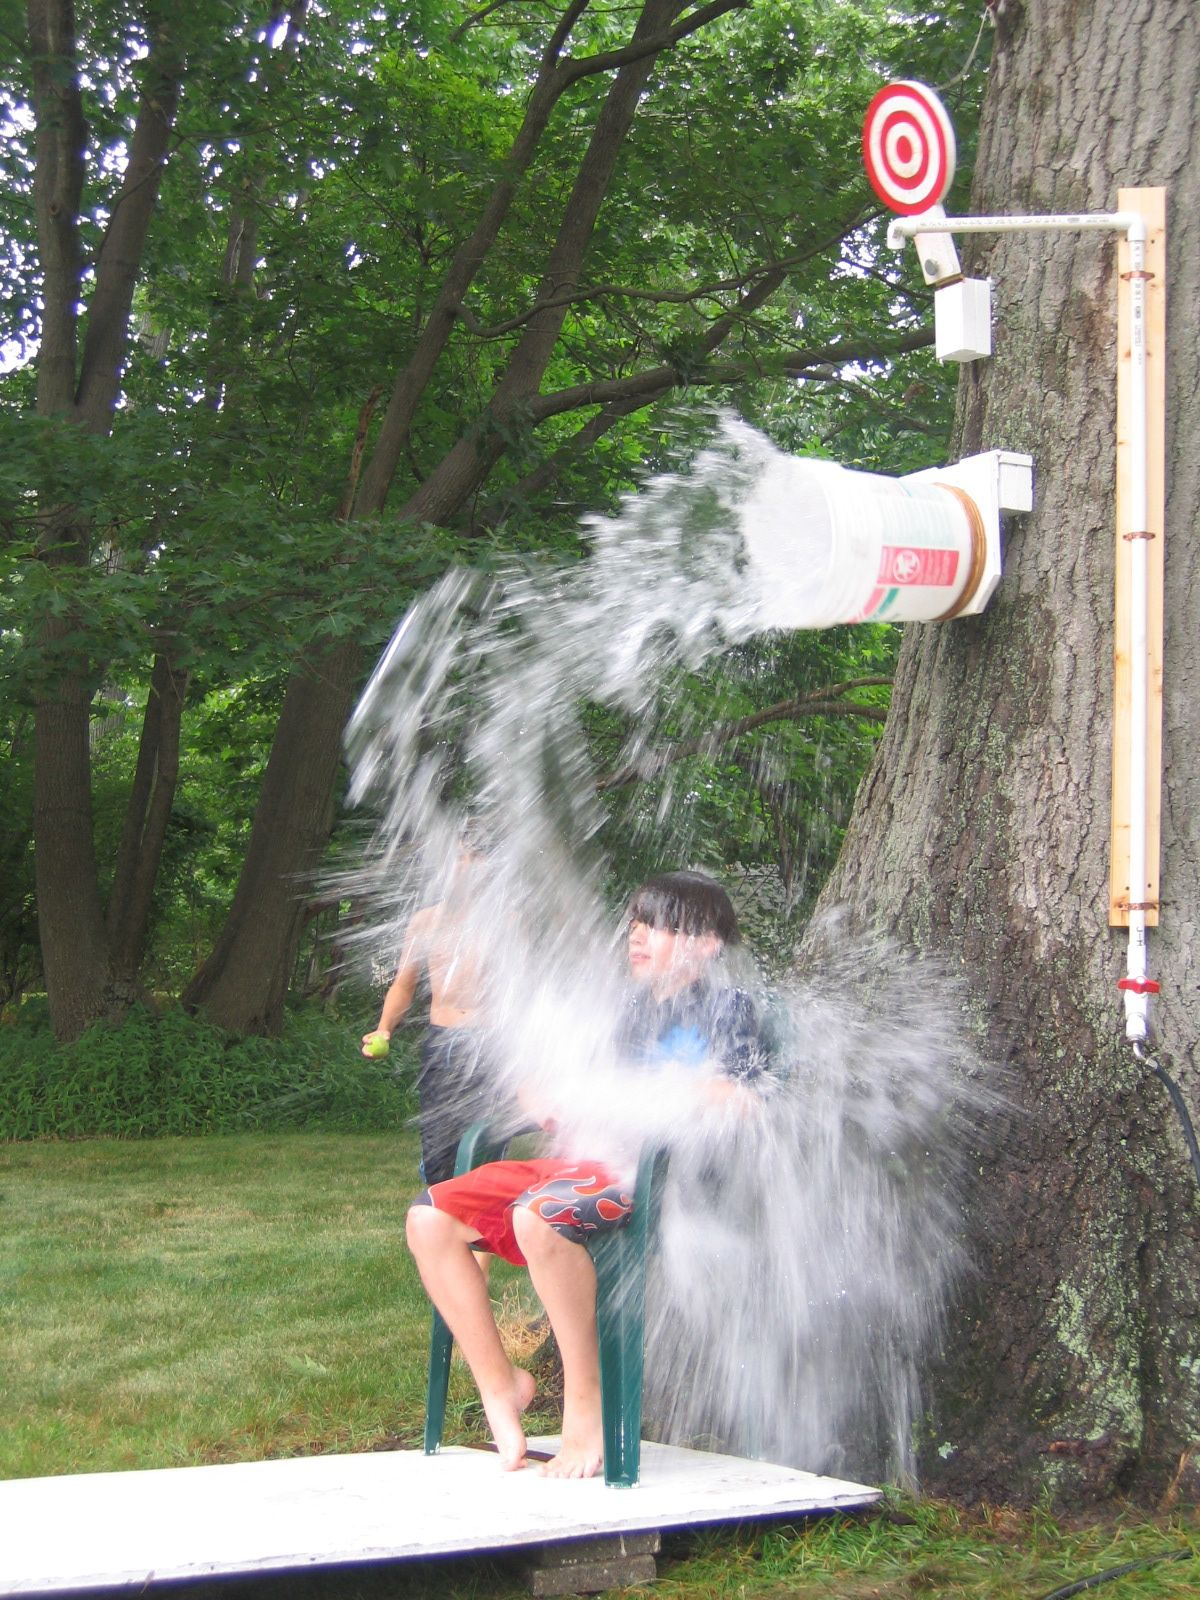 20 Fun Diy Outdoor Games For Kids Backyard Party Groups Building A Simple Circuit With Pinterest